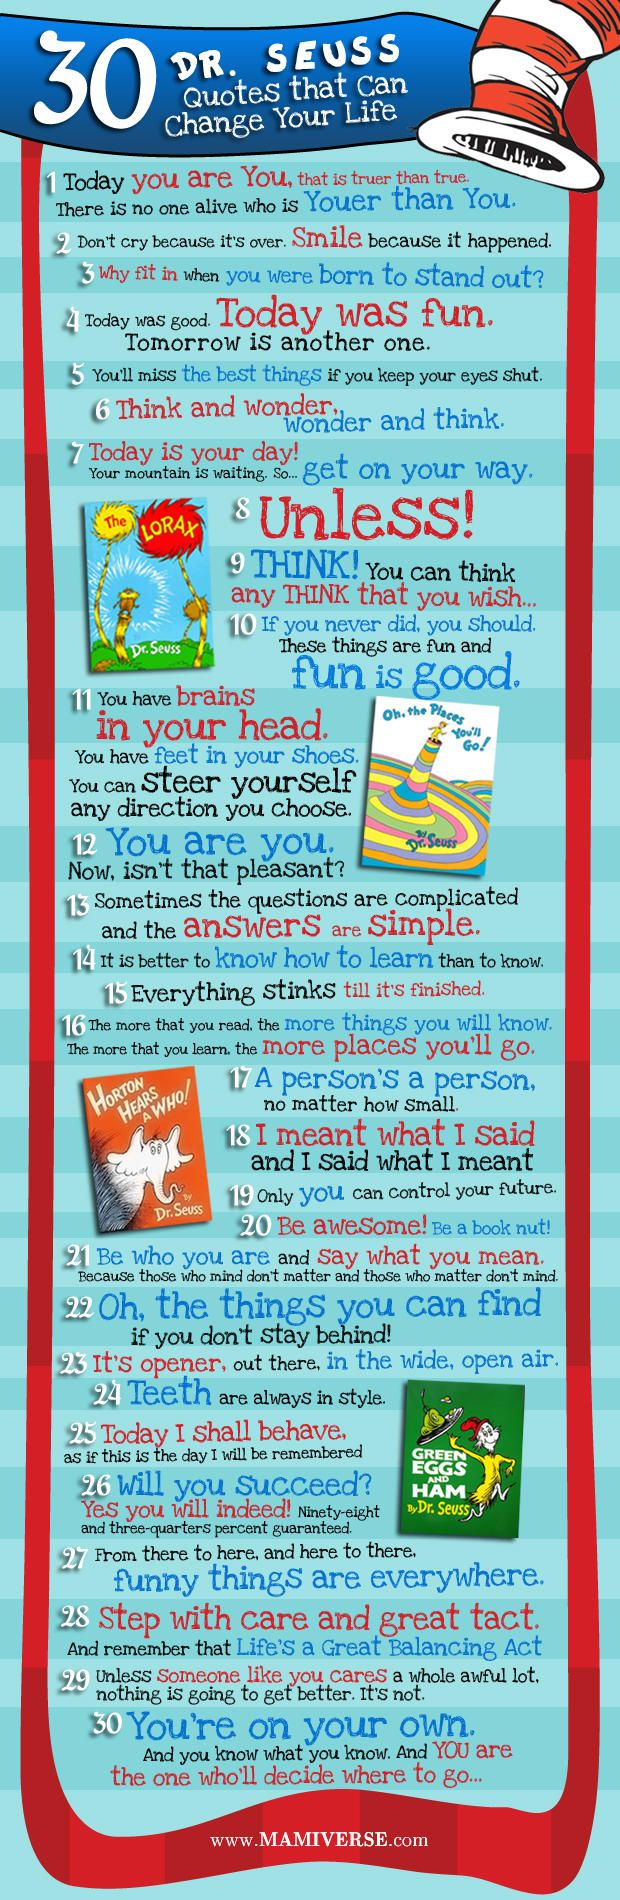 #DrSeuss quotes - sharing the wisdom of Dr. Seuss